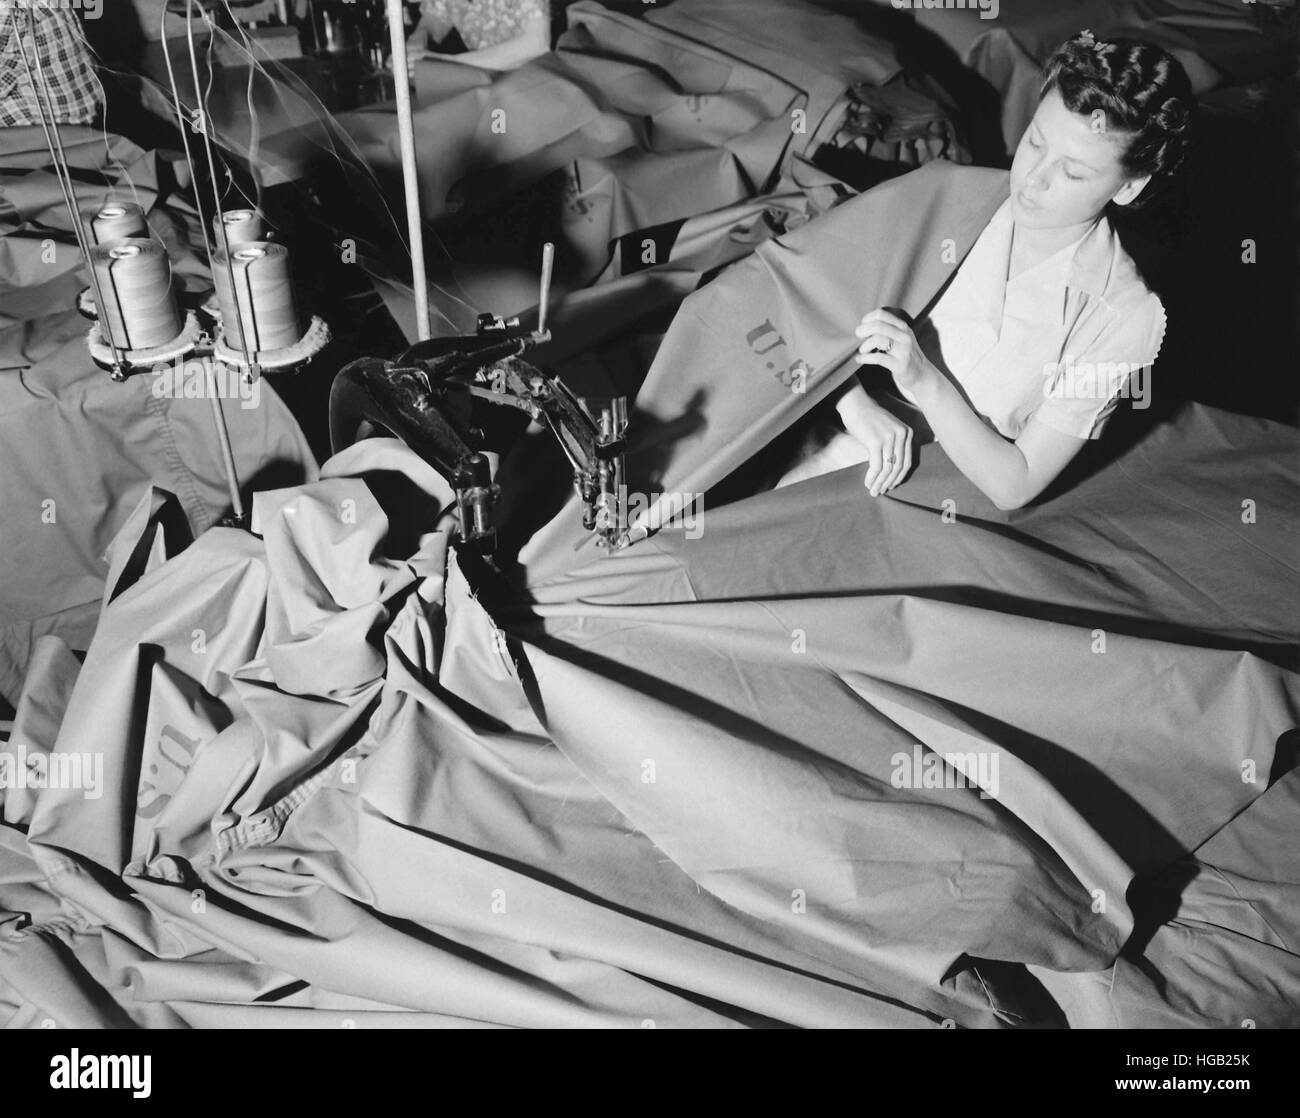 Wwii Tents Stock Photos & Wwii Tents Stock Images - Alamy